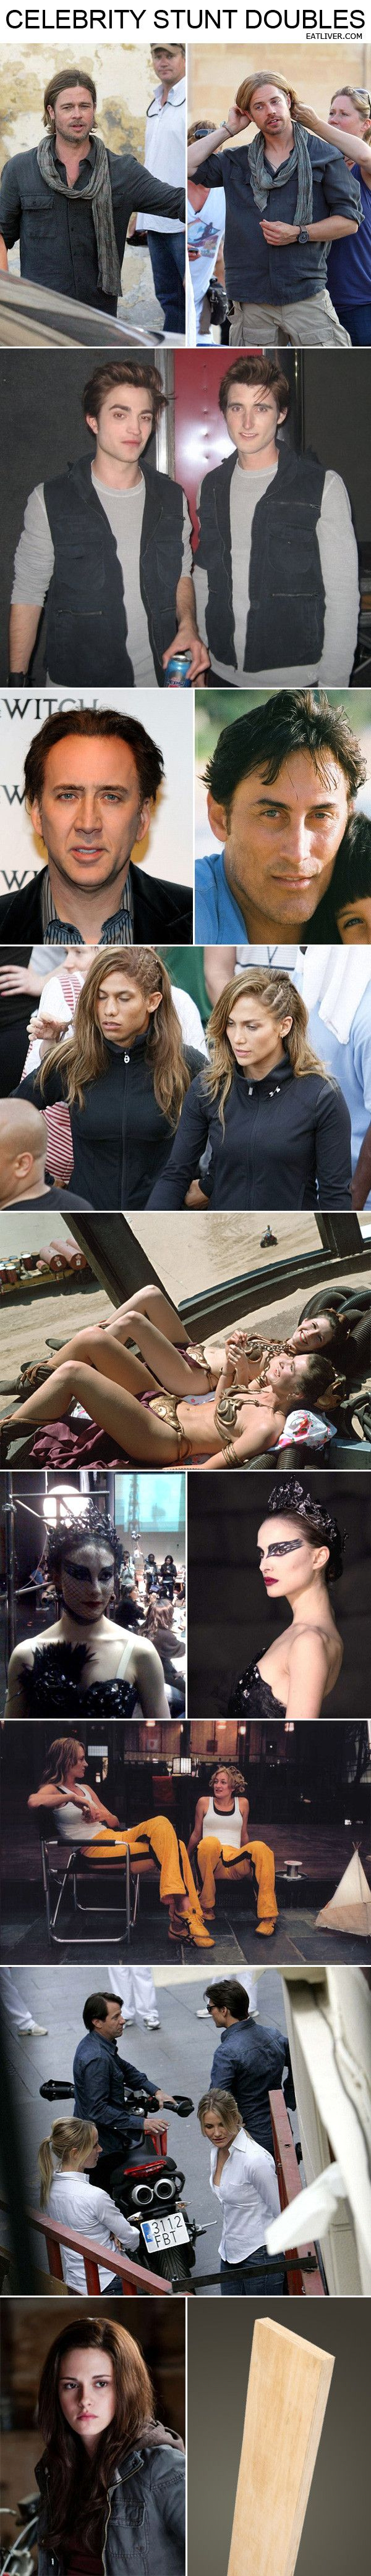 Celebrity stunt doubles...the last one...HILARIOUS!!!